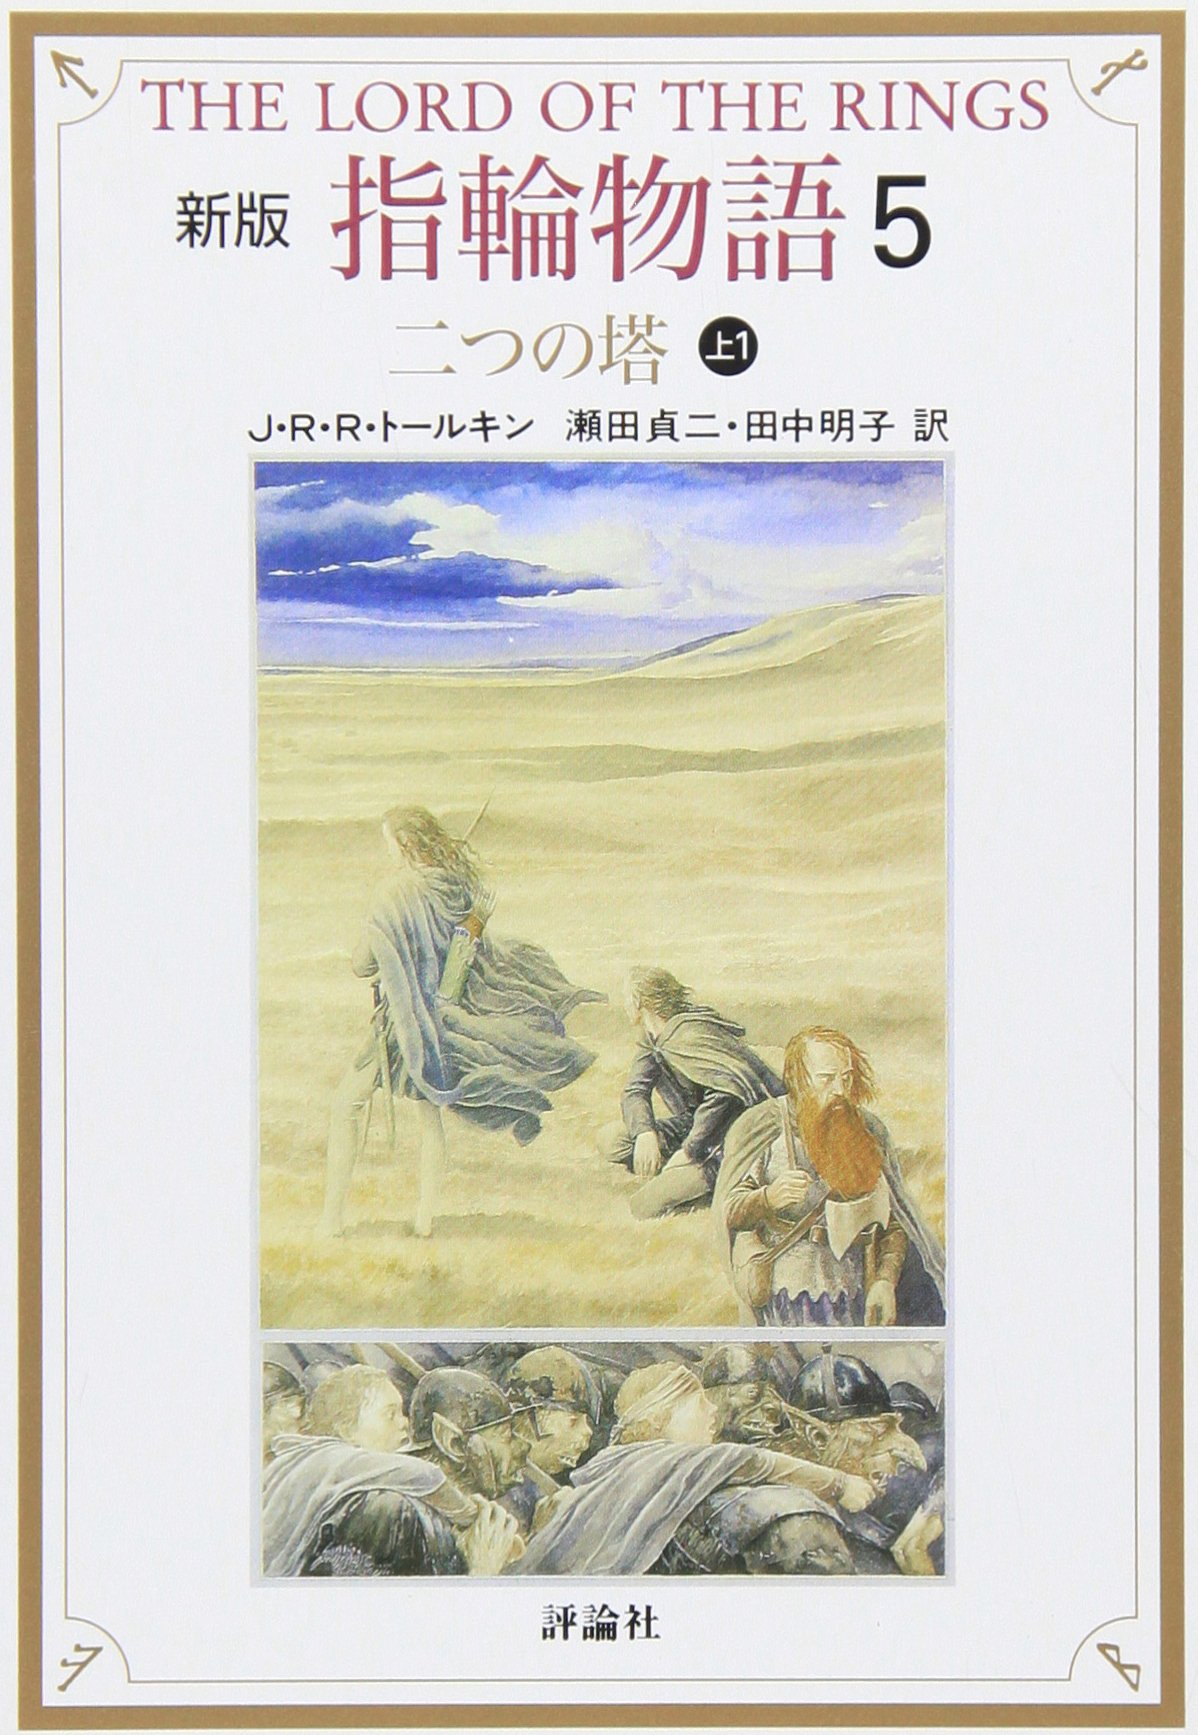 The Lord of the Rings: The Two Towers [In Japanese Language] (Volume 5) by ToÌ''kyoÌ'' : HyoÌ''ronsha, 1992.